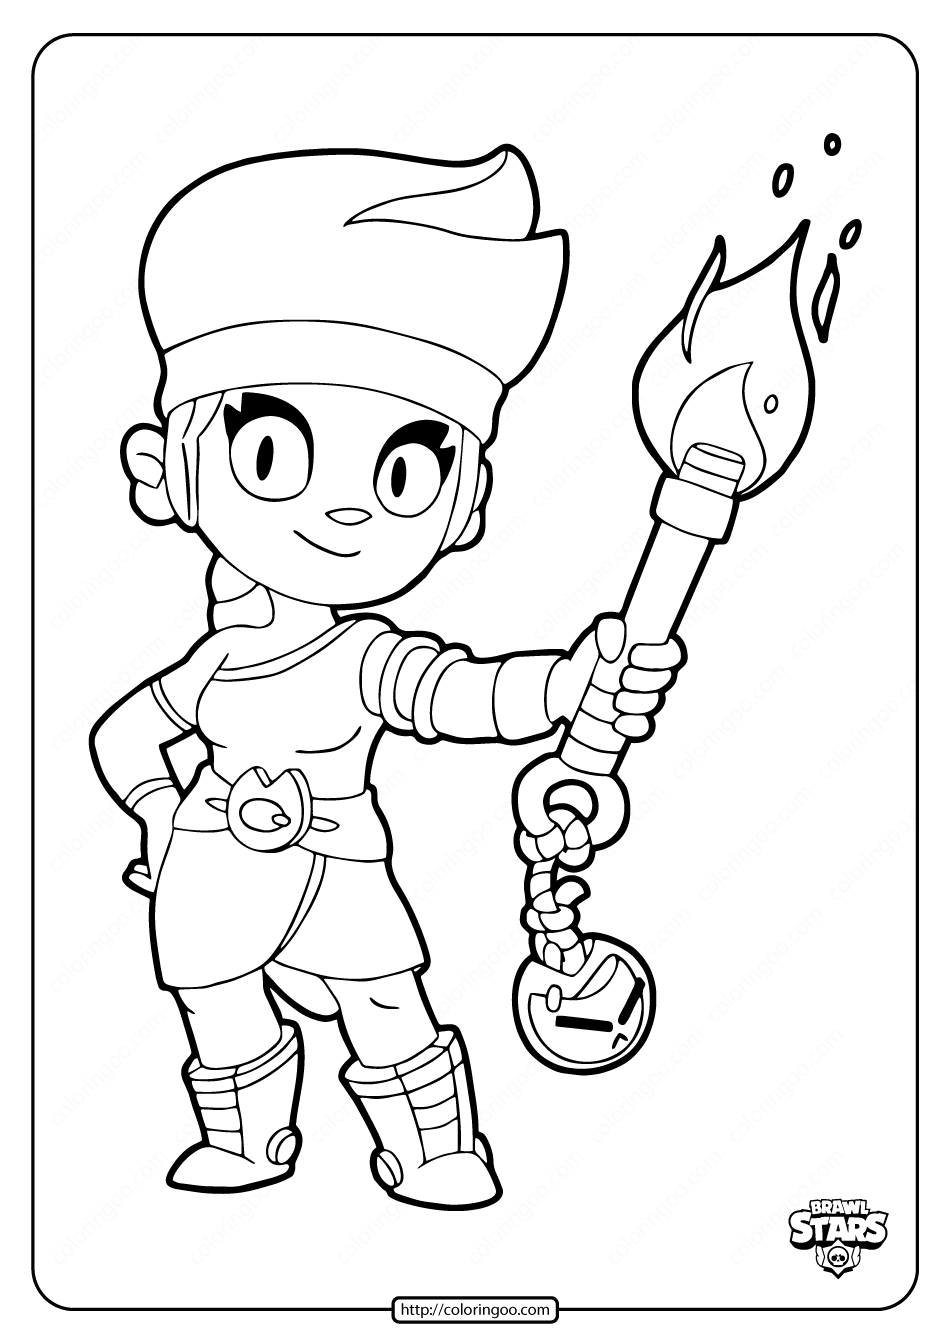 Brawl Stars Amber Coloring Pages Star Coloring Pages Coloring Pages Ladybug Coloring Page